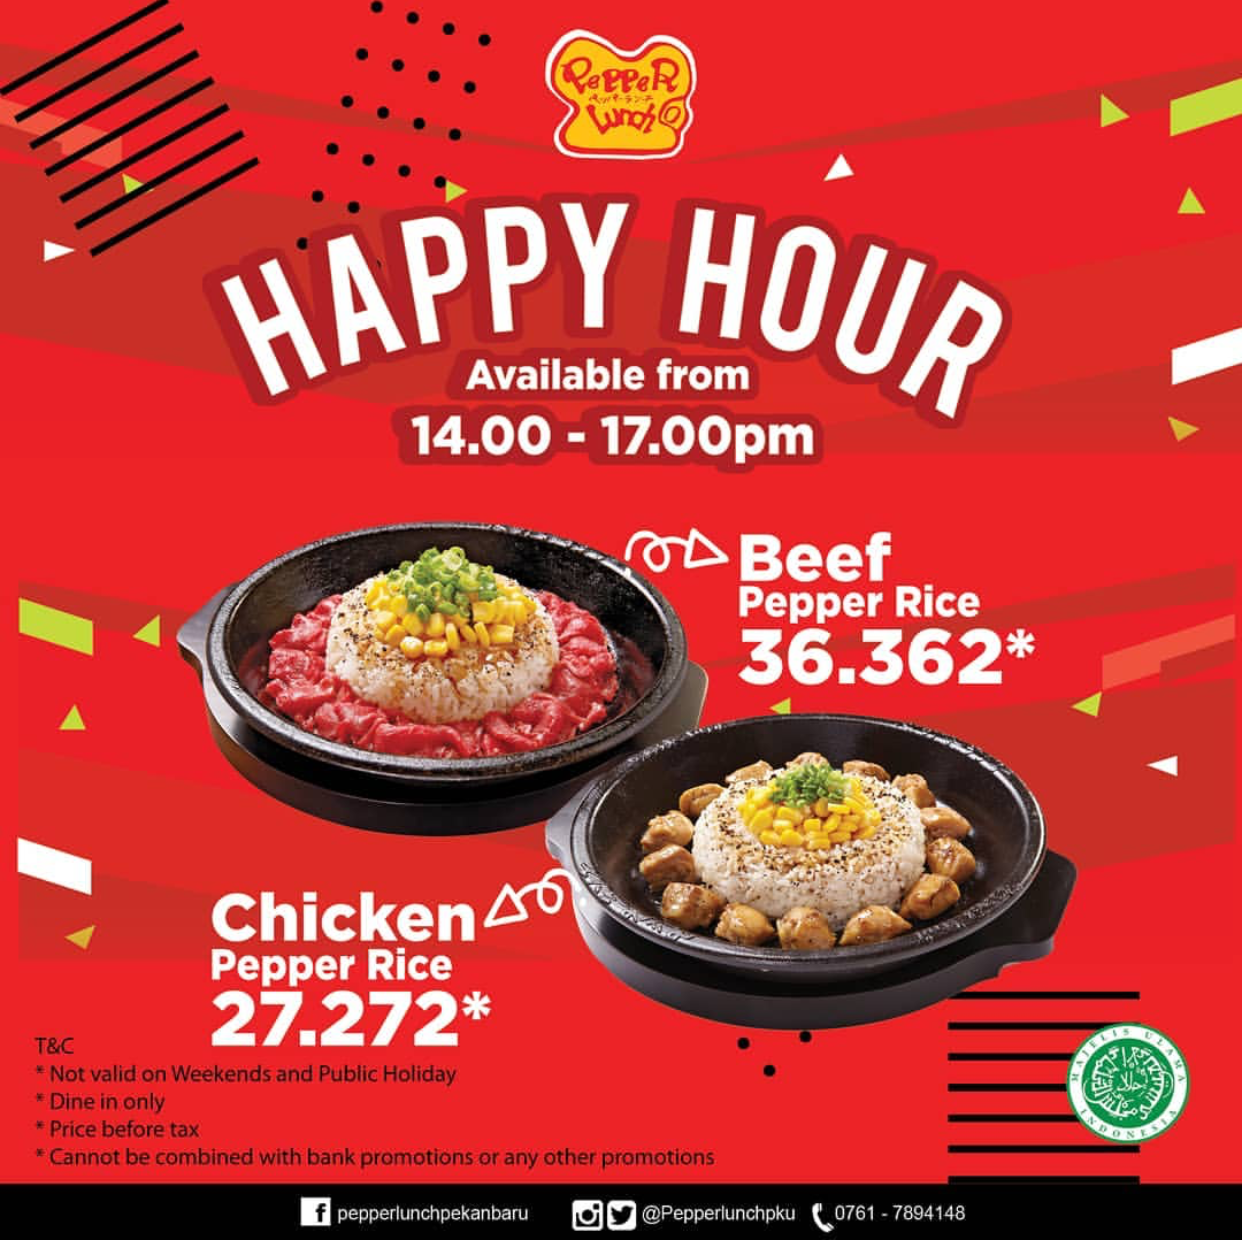 PEPPER LUNCH Promo HAPPY HOUR